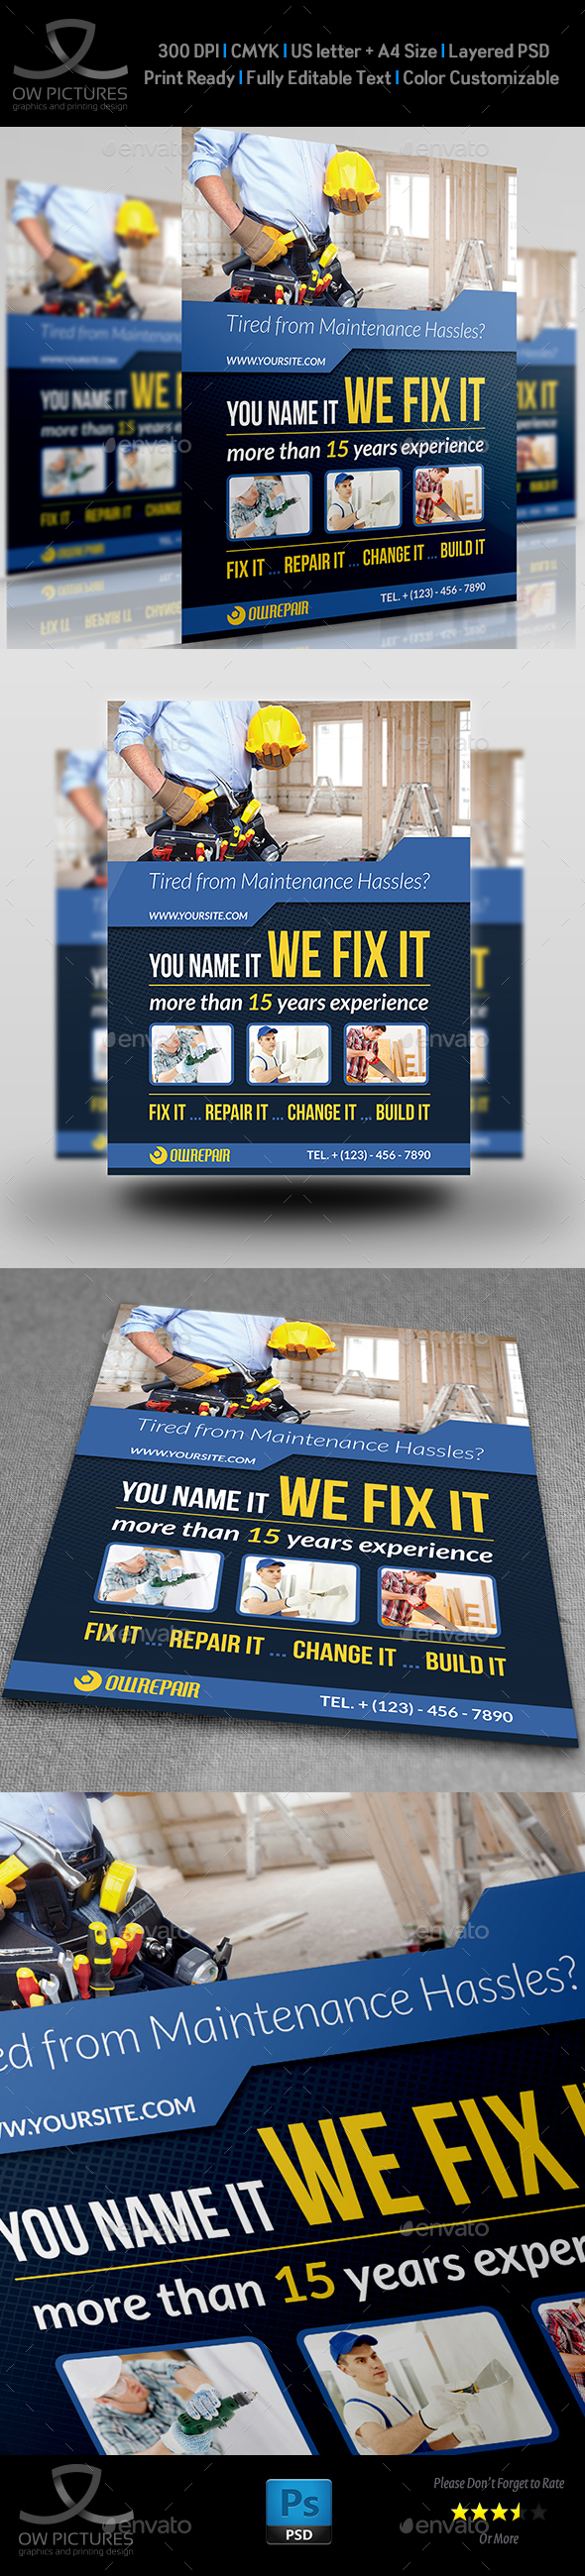 House Repair Flyer Template - Flyers Print Templates